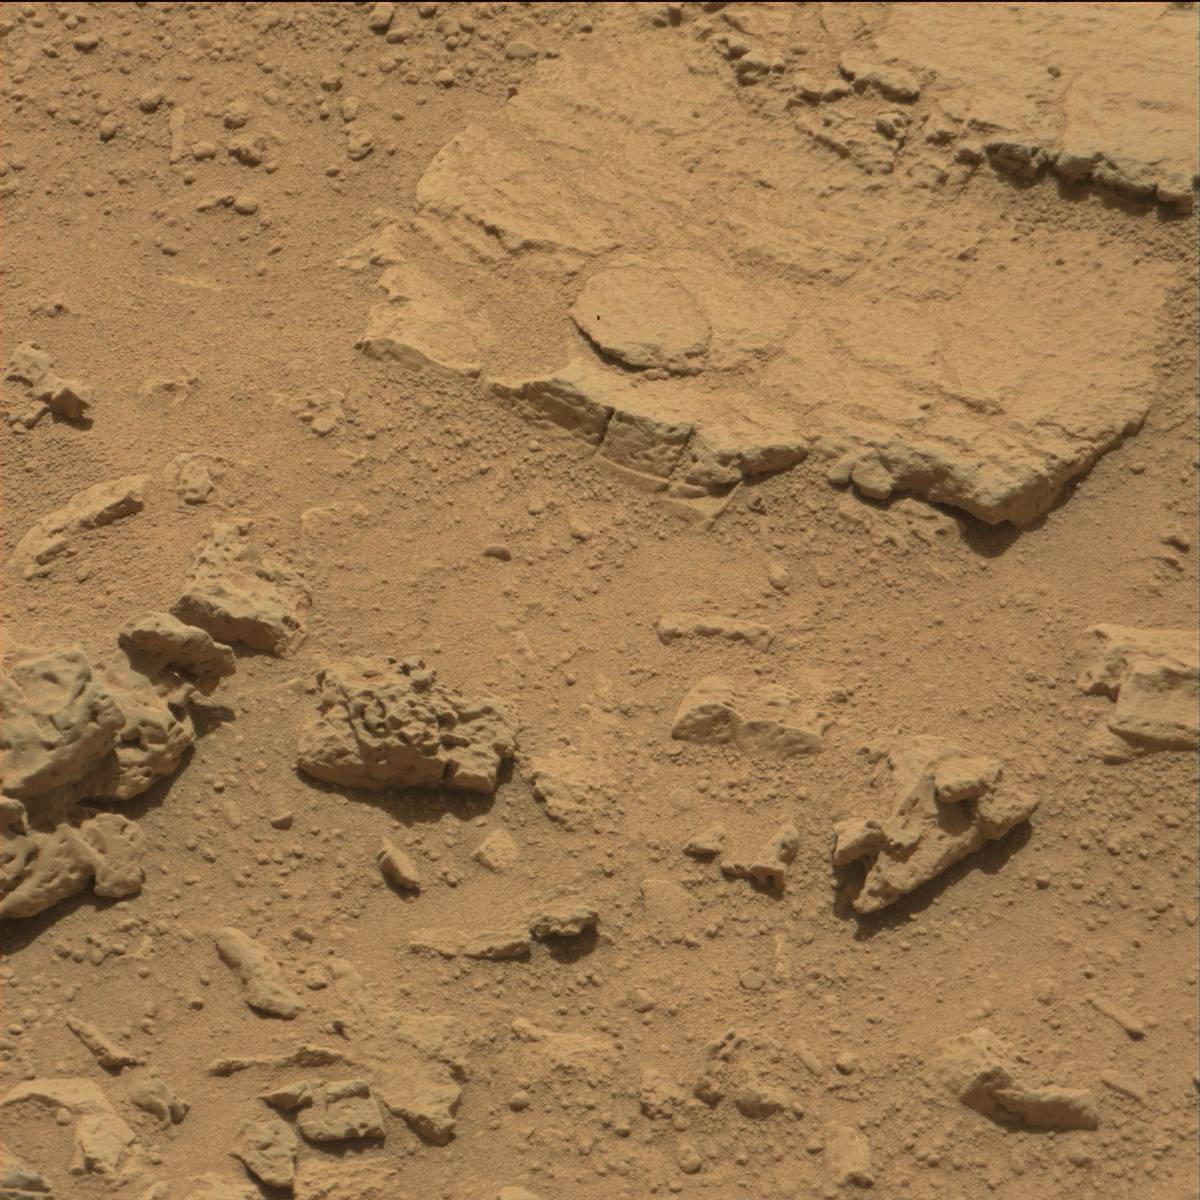 nasa finds tablets on mars - photo #14